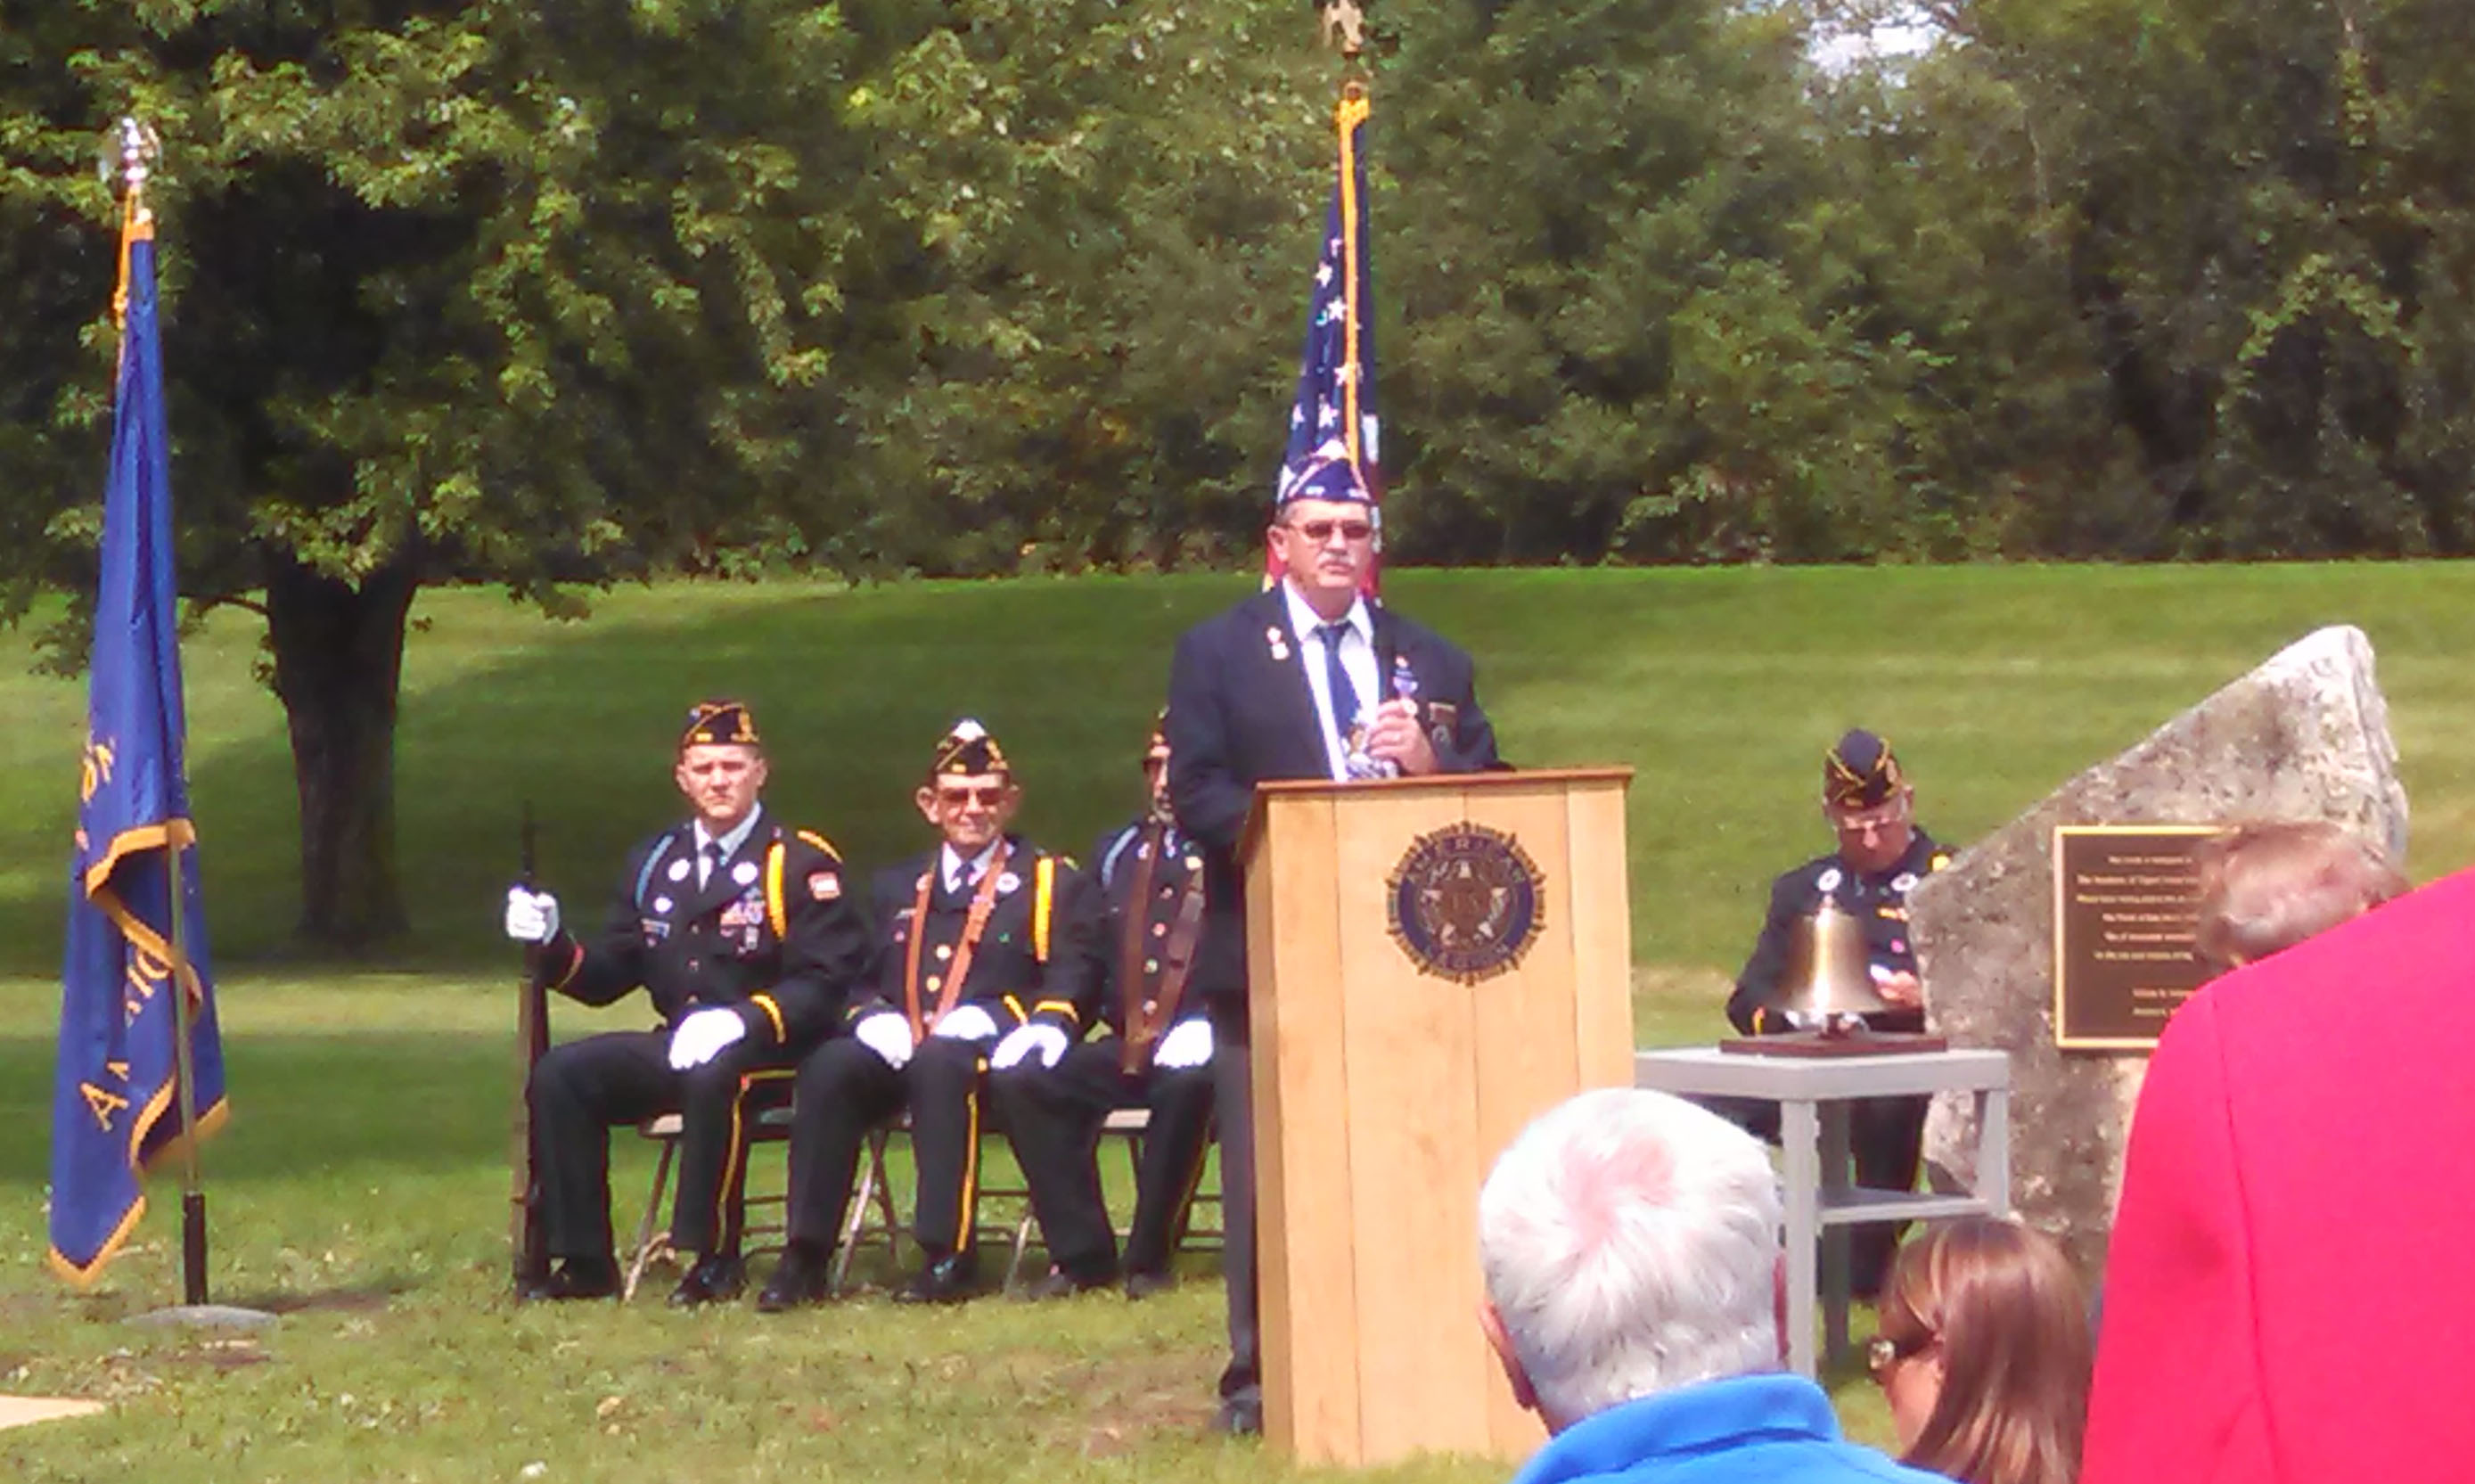 8 29 15 Lee Memorial Dedication 4